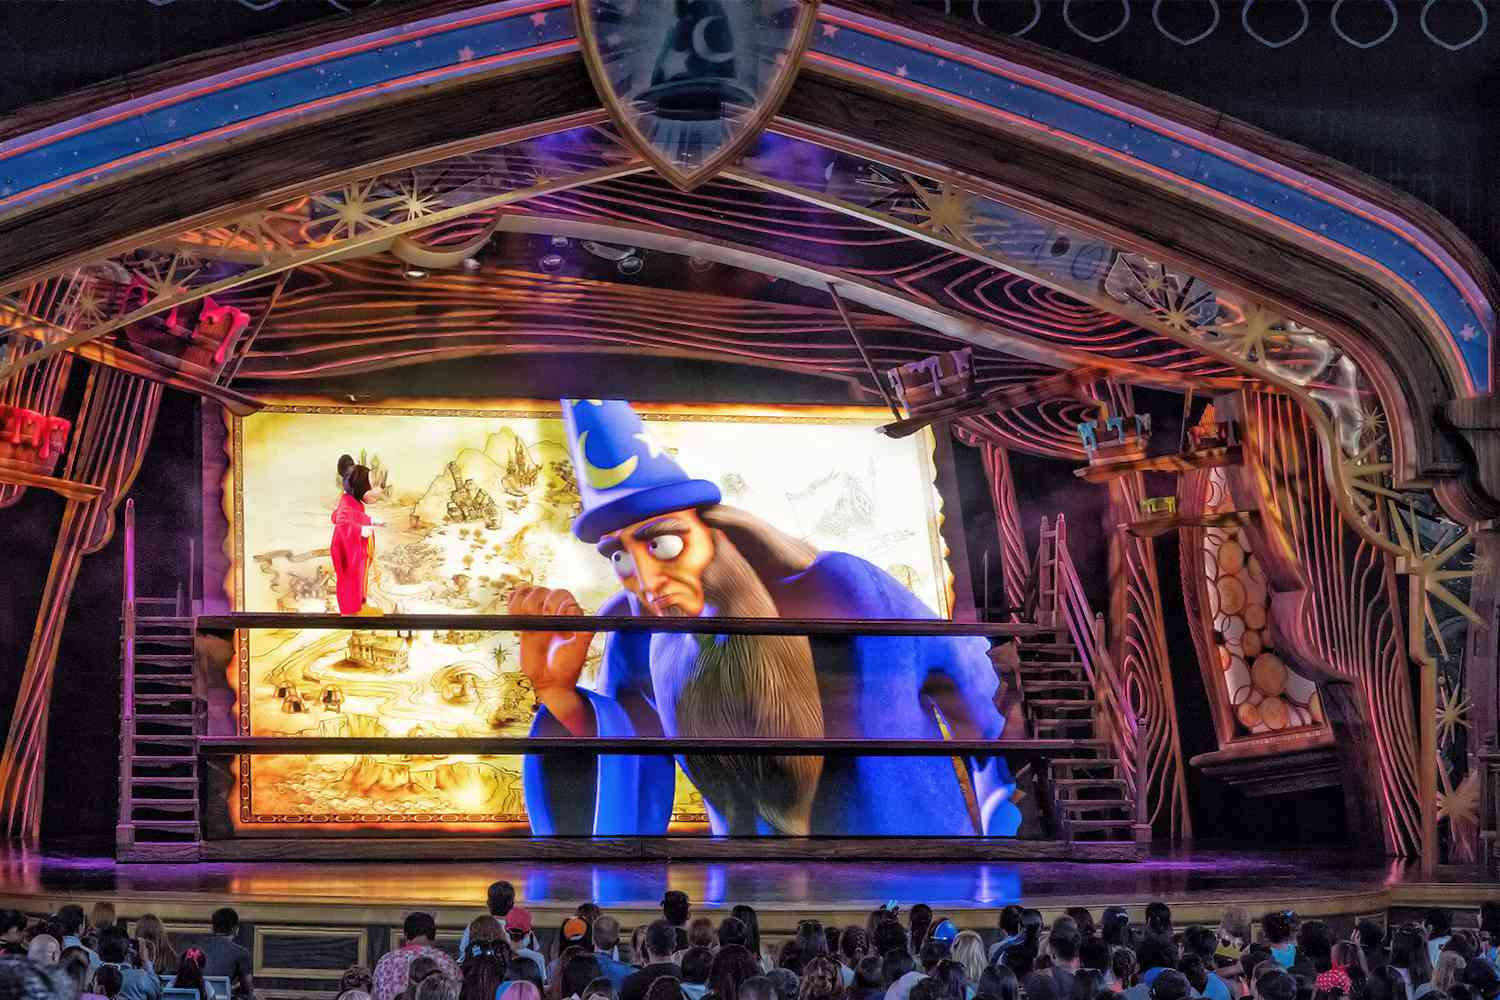 Scene from Mickey and the Magical Map